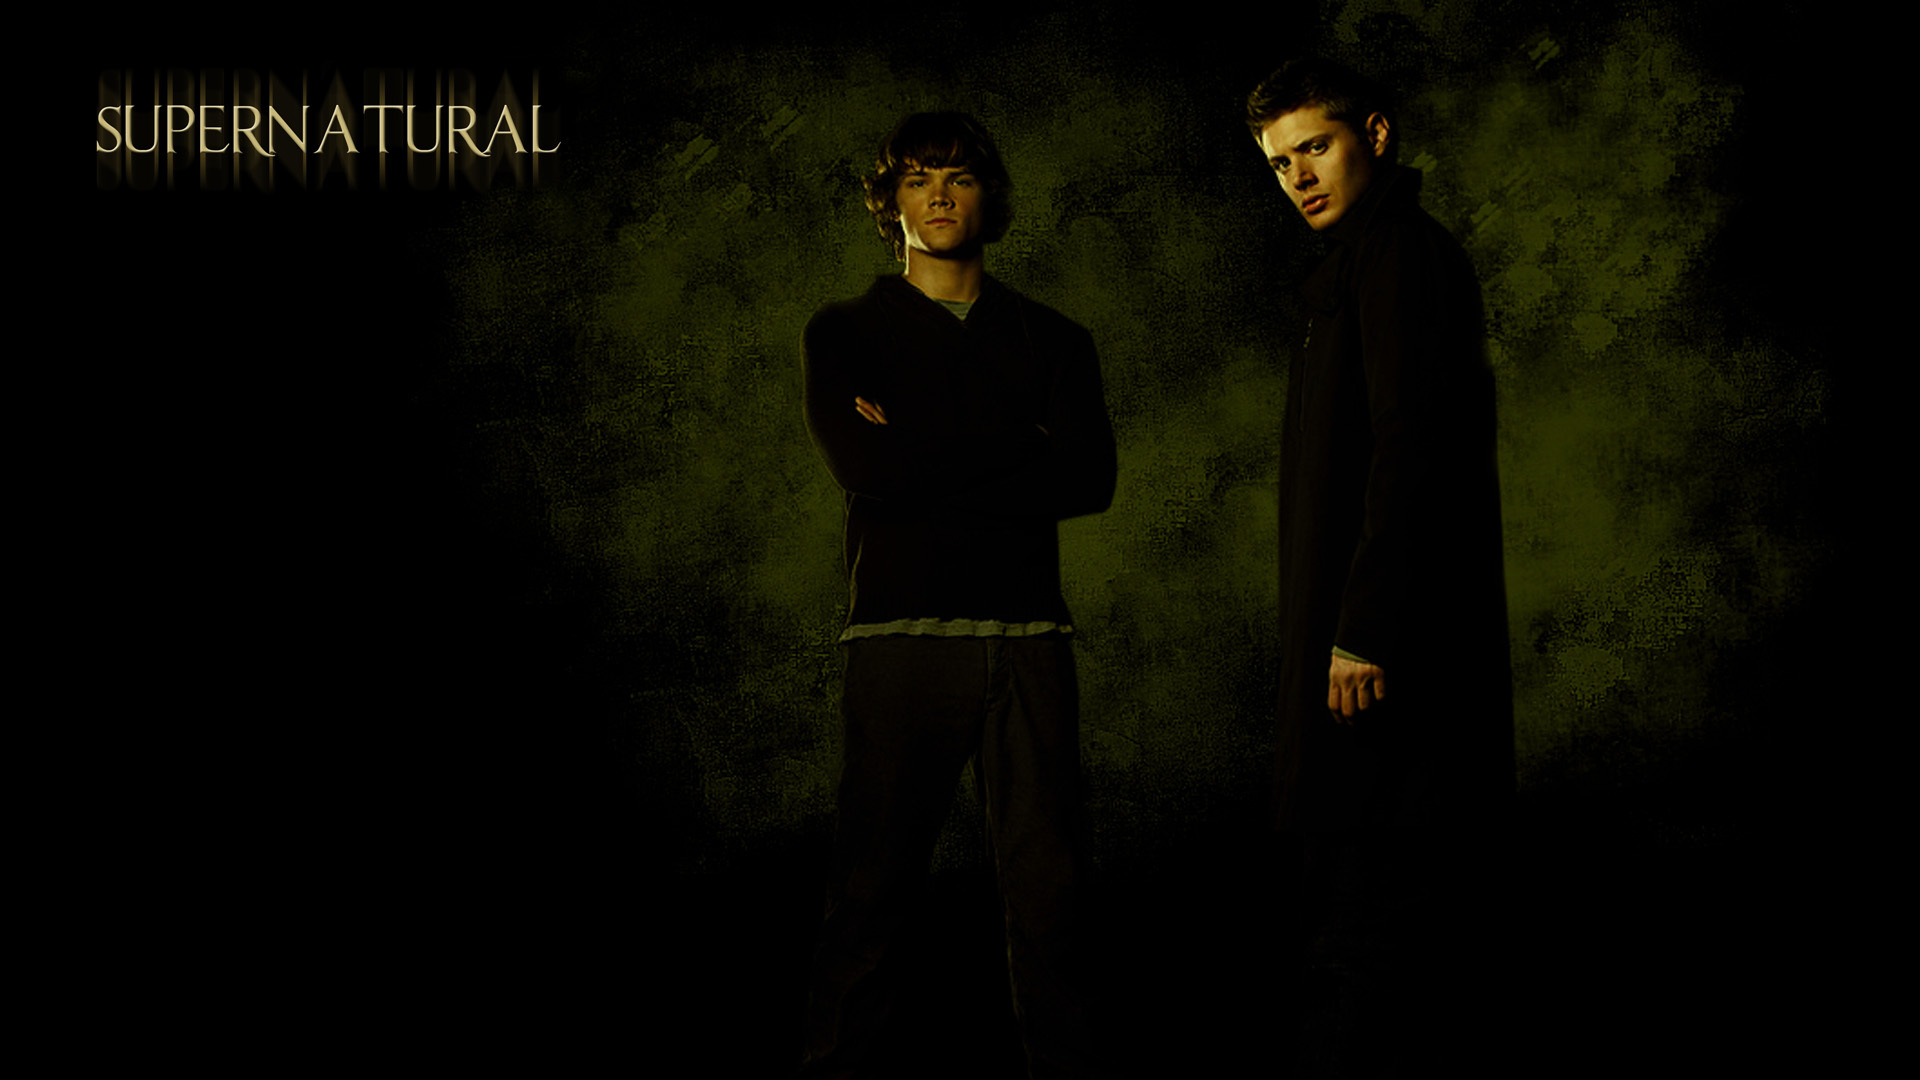 Supernatural 4k Wallpapers For Your Desktop Or Mobile Screen Free And Easy To Download